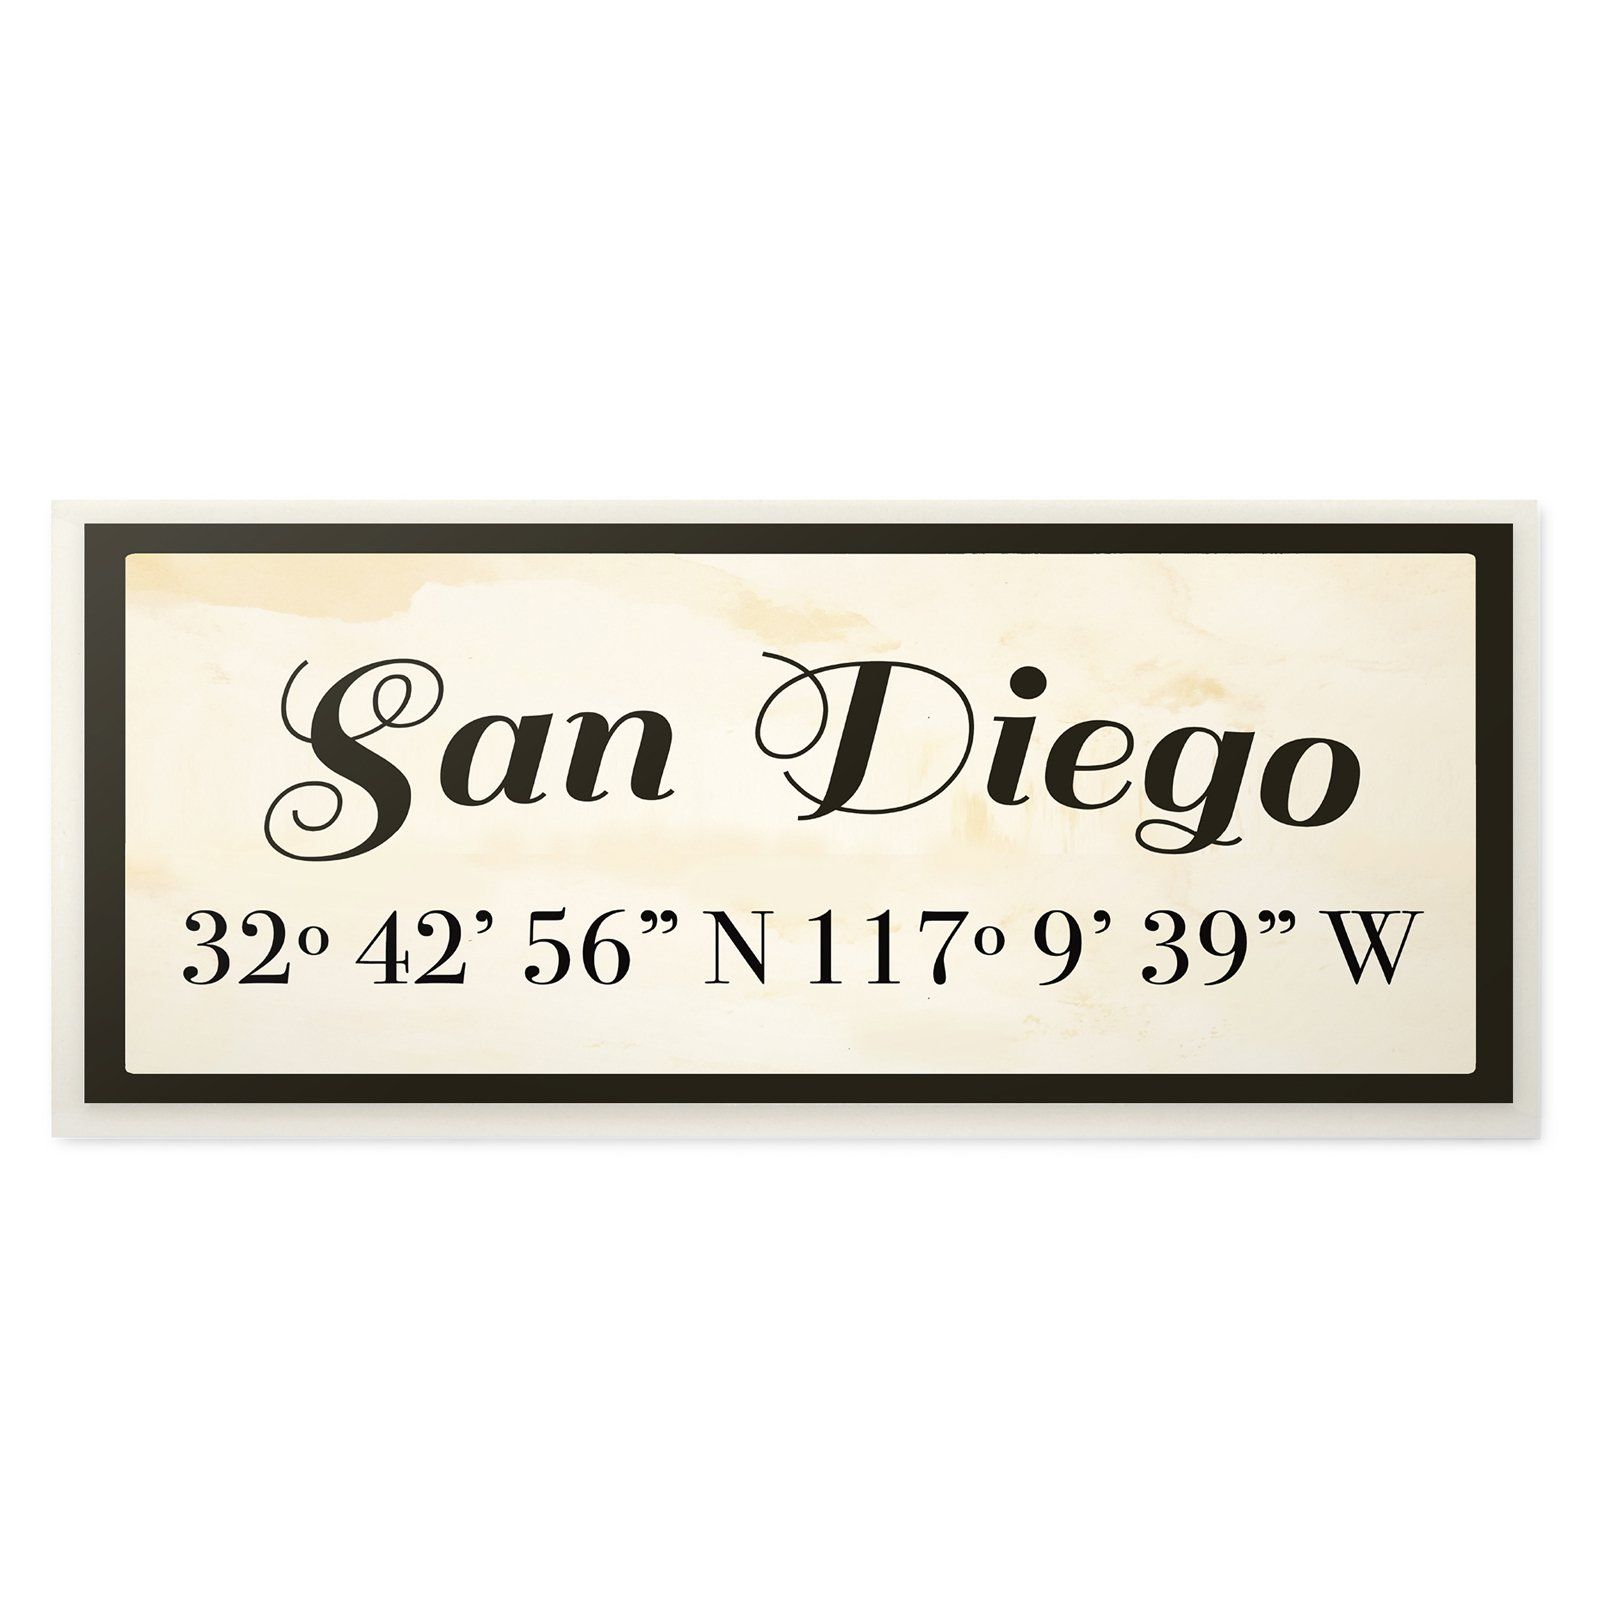 The Stupell Home Decor Collection San Diego City Coordinates Wall Art In 2021 Decor Collection San Diego City San Diego